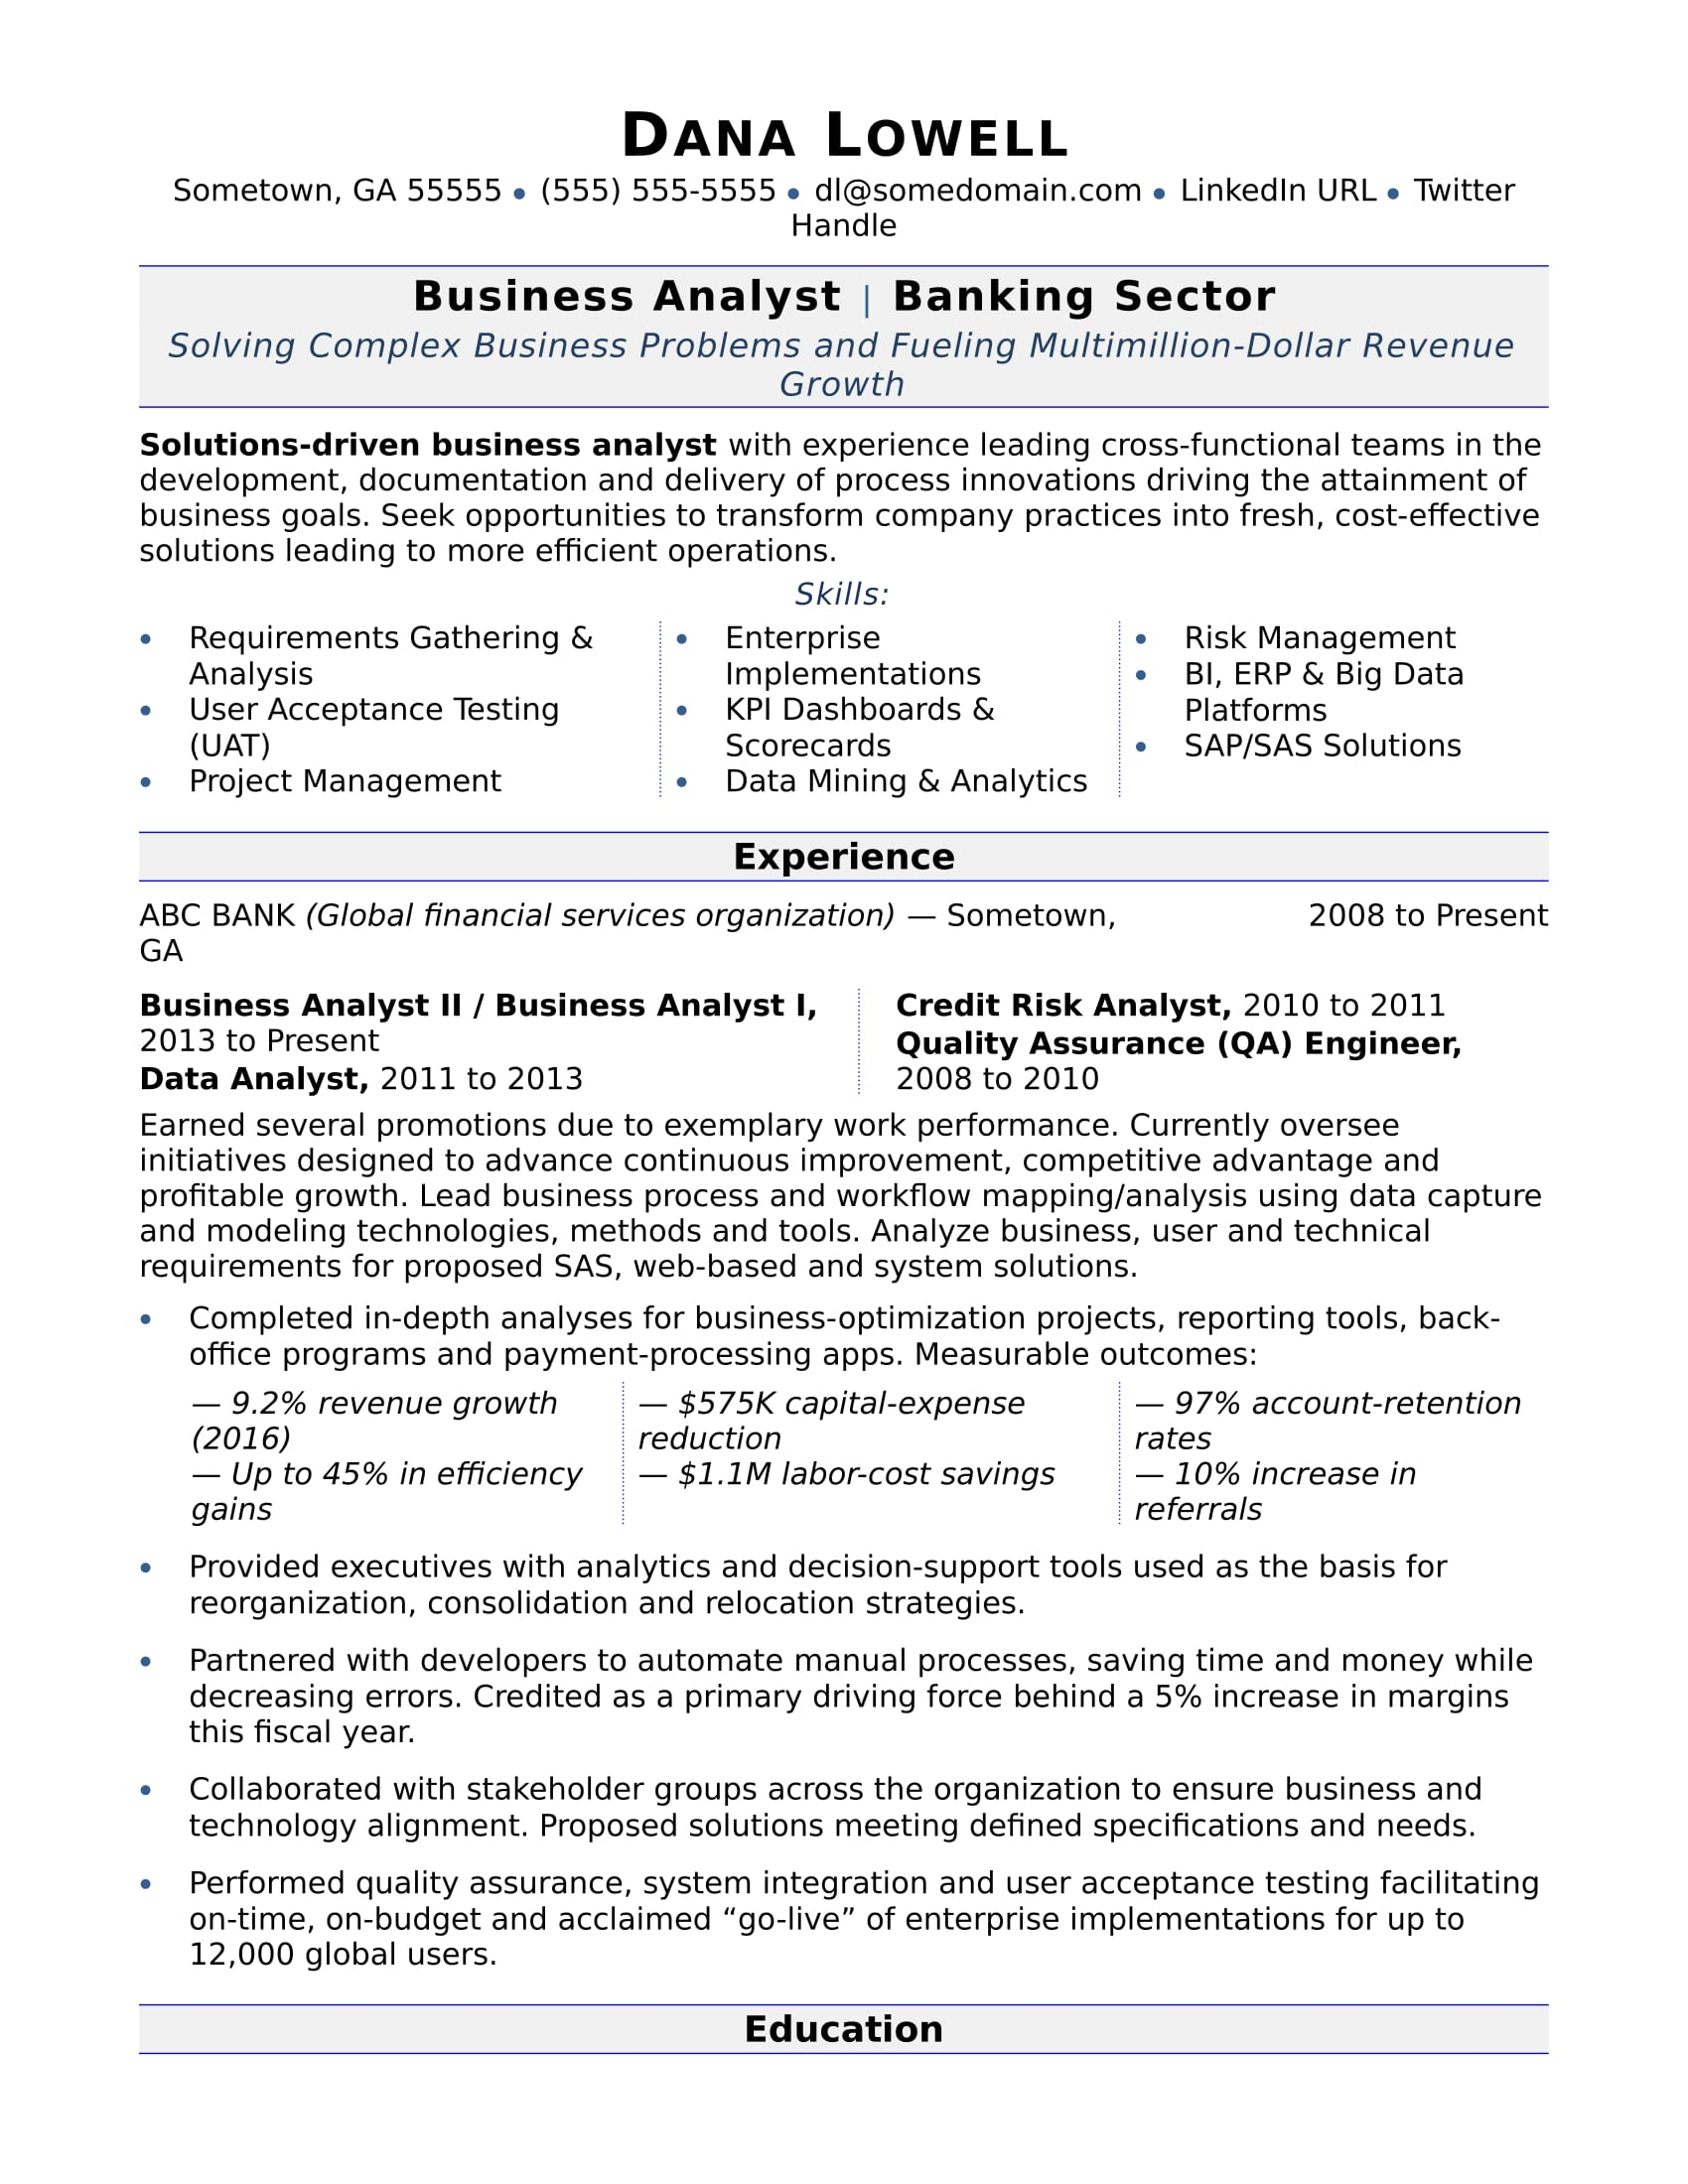 business analyst resume sample - Sample Resume